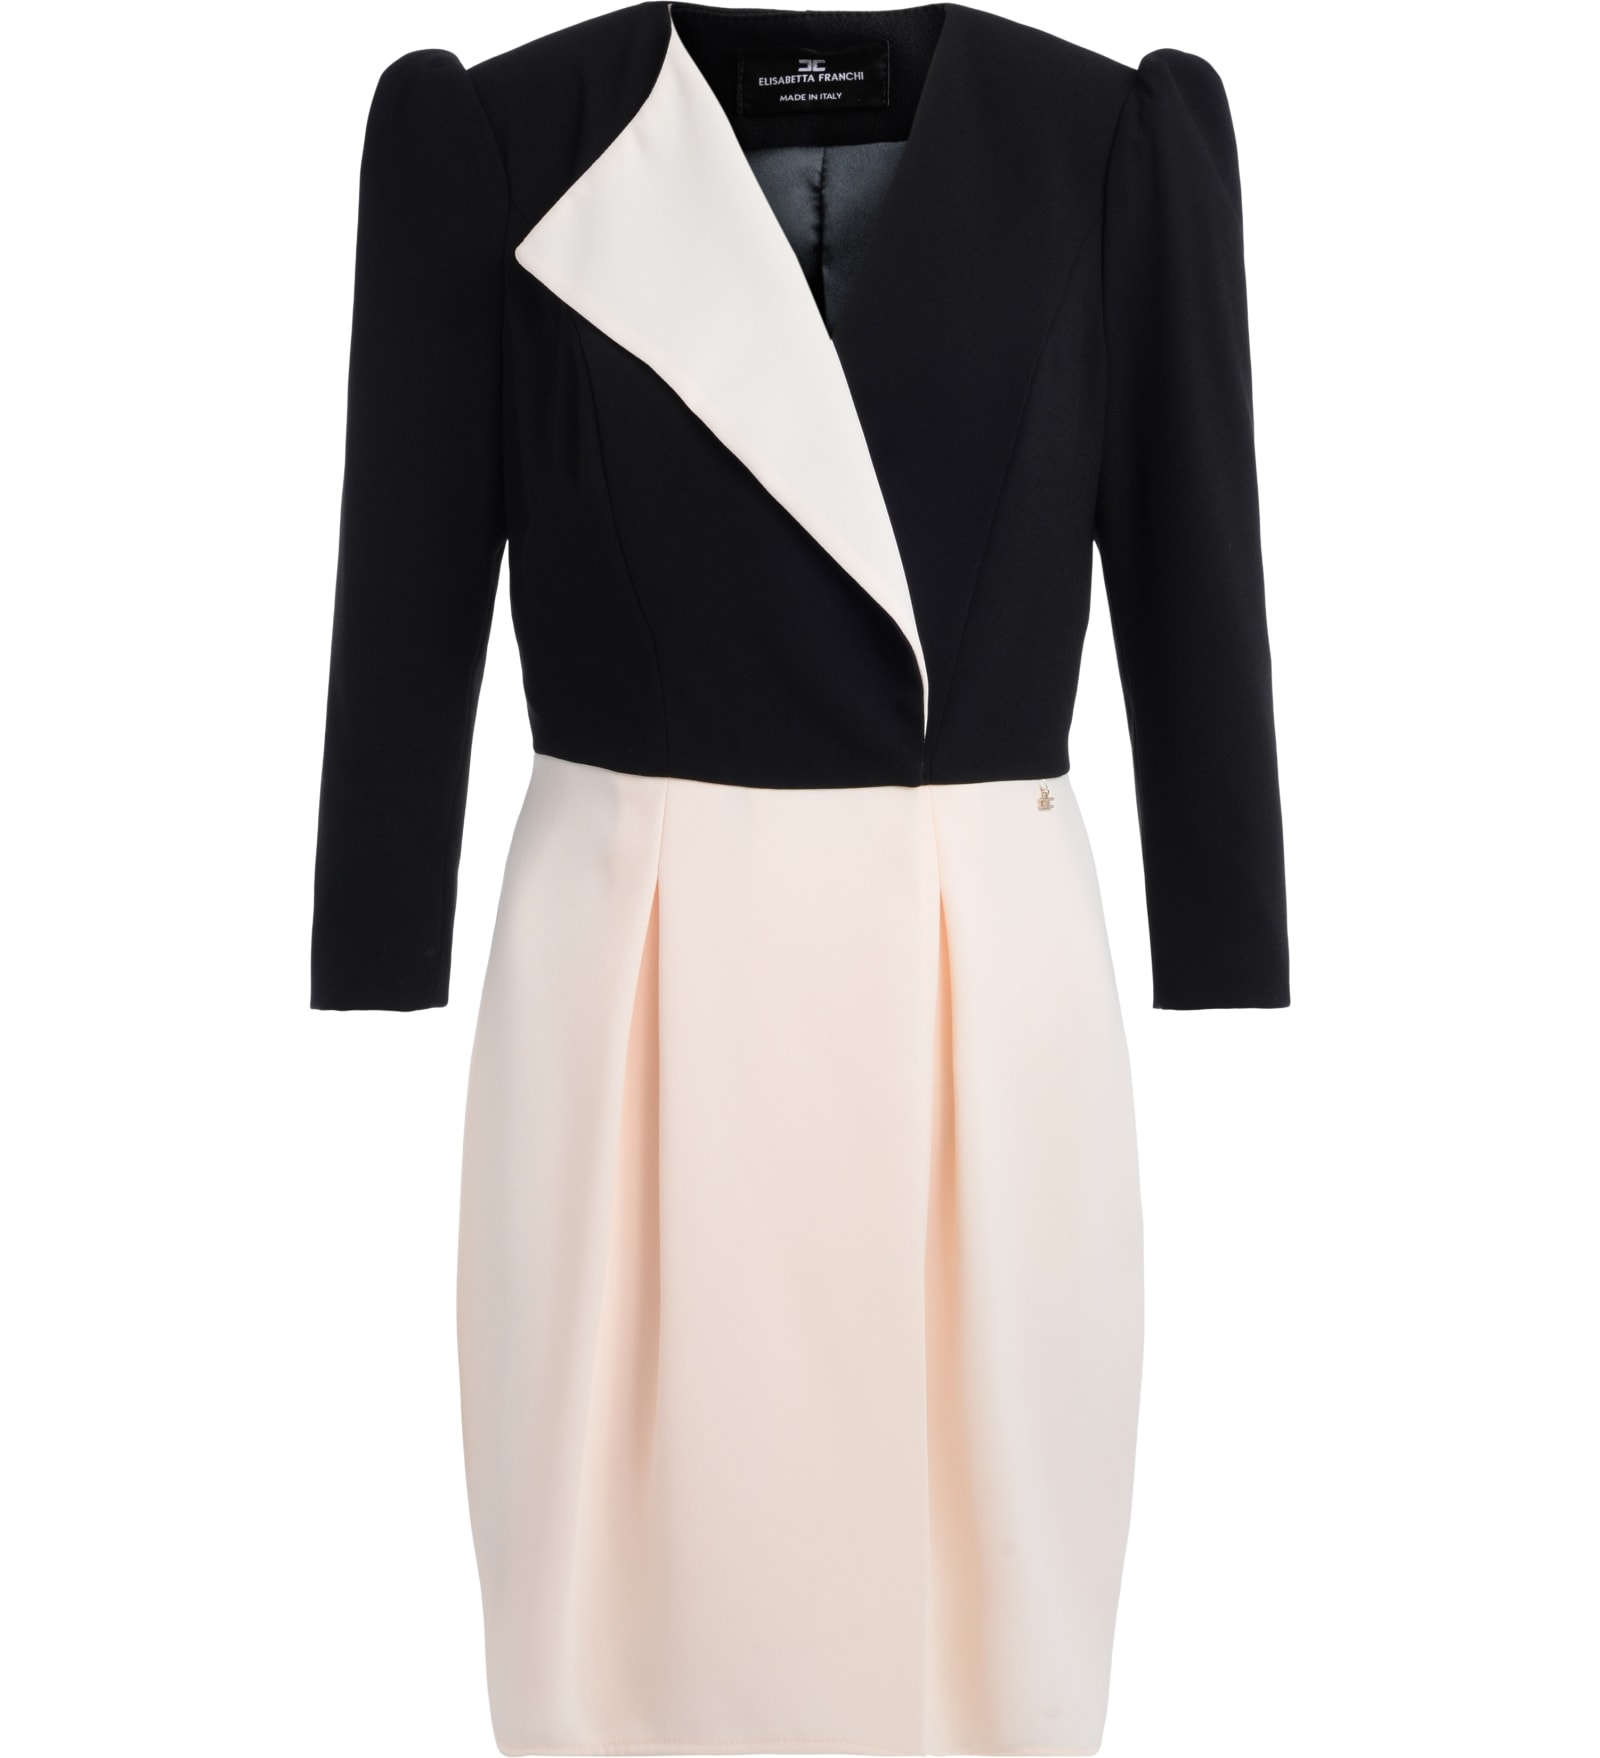 Elisabetta Franchi Dress With Black Wallet And Butter With Three-quarter Sleeves